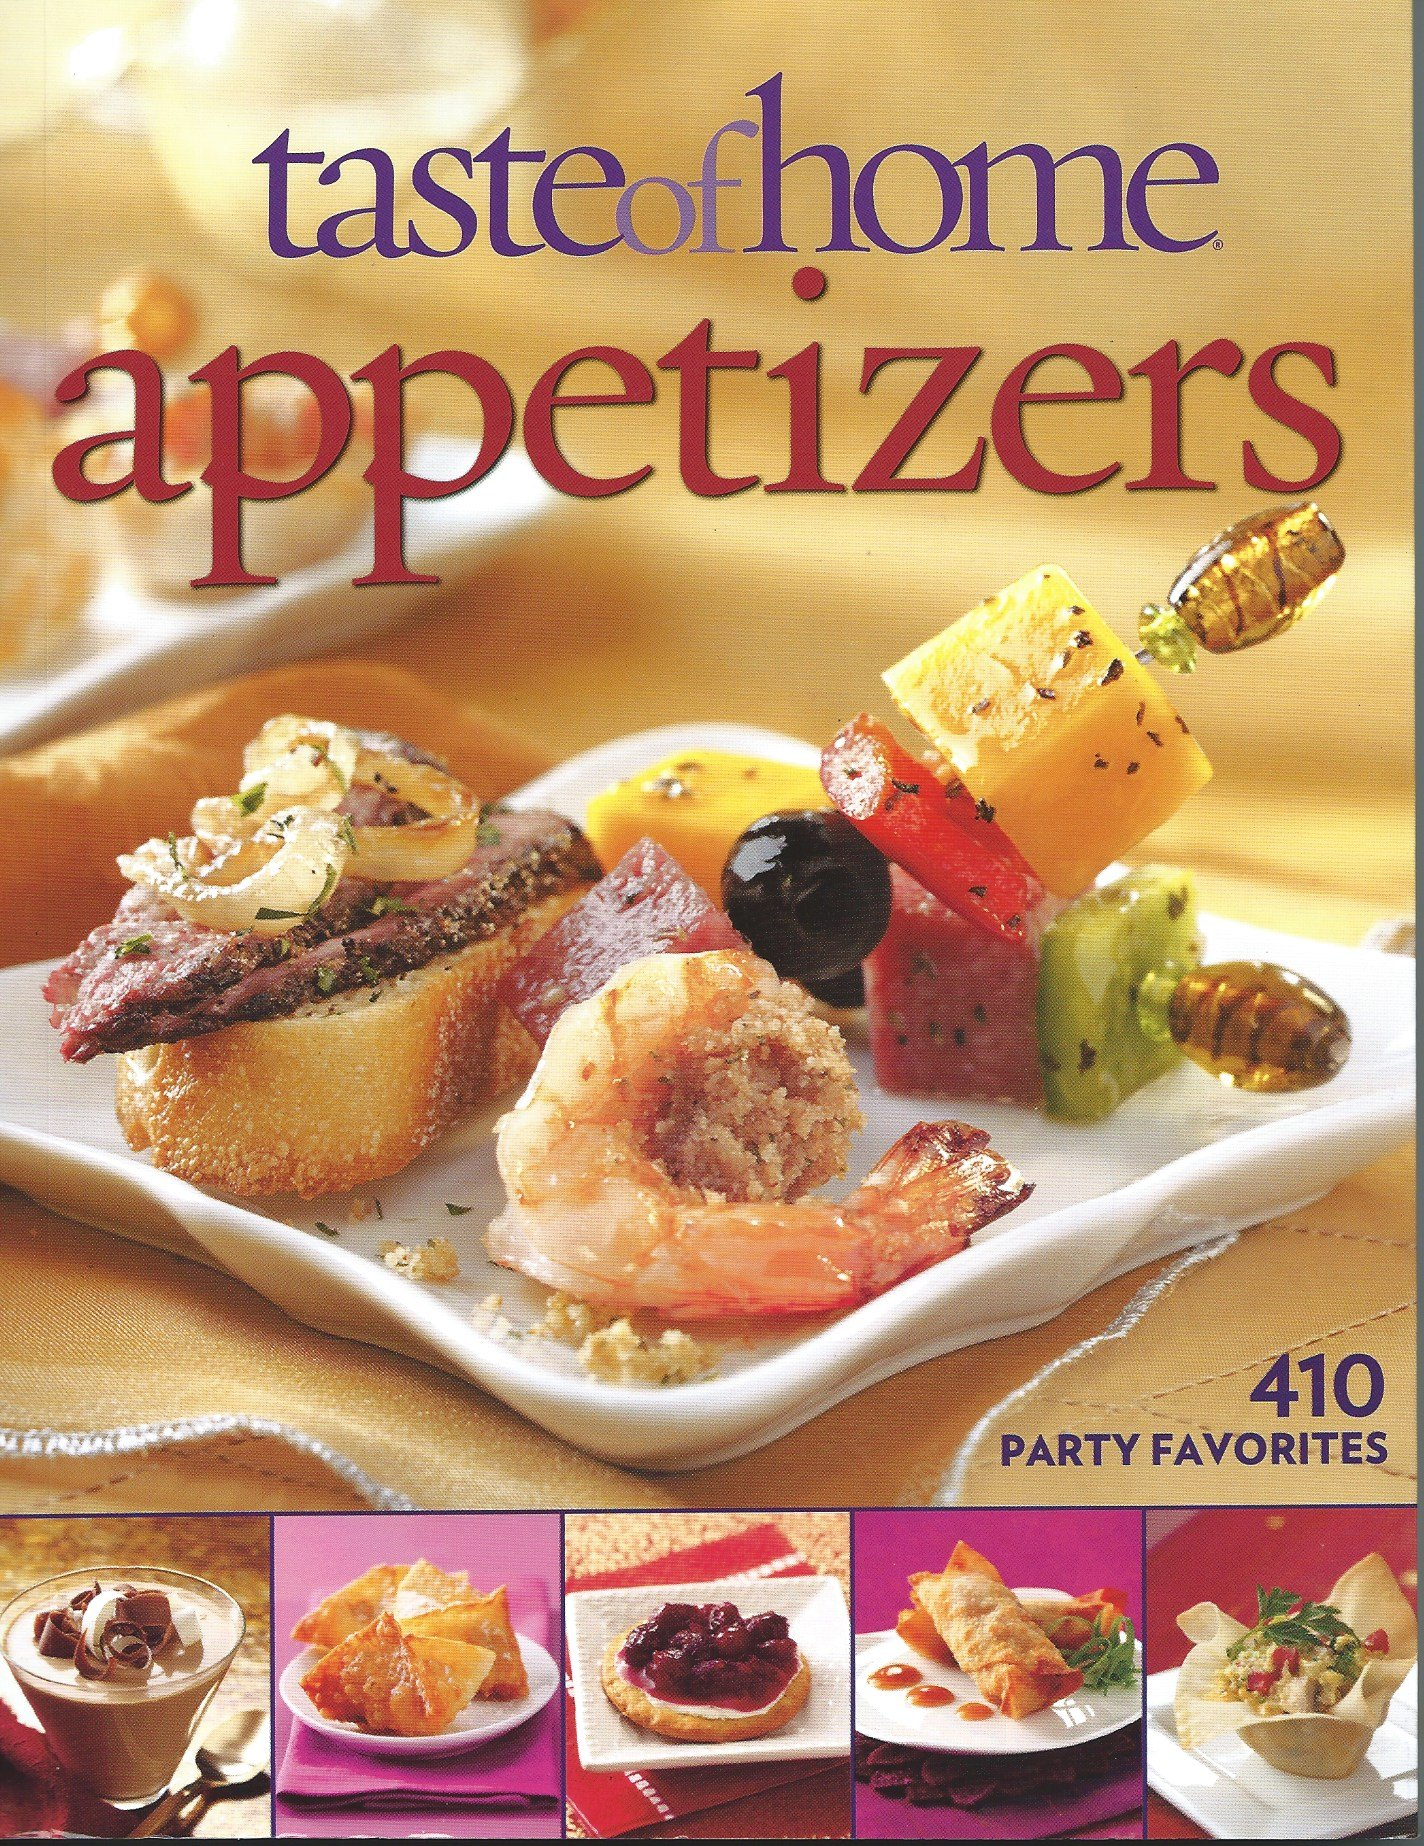 Taste of Home: Appetizers: 410 Party Favorites by Cahterine Cassidy (2011-05-03) pdf epub